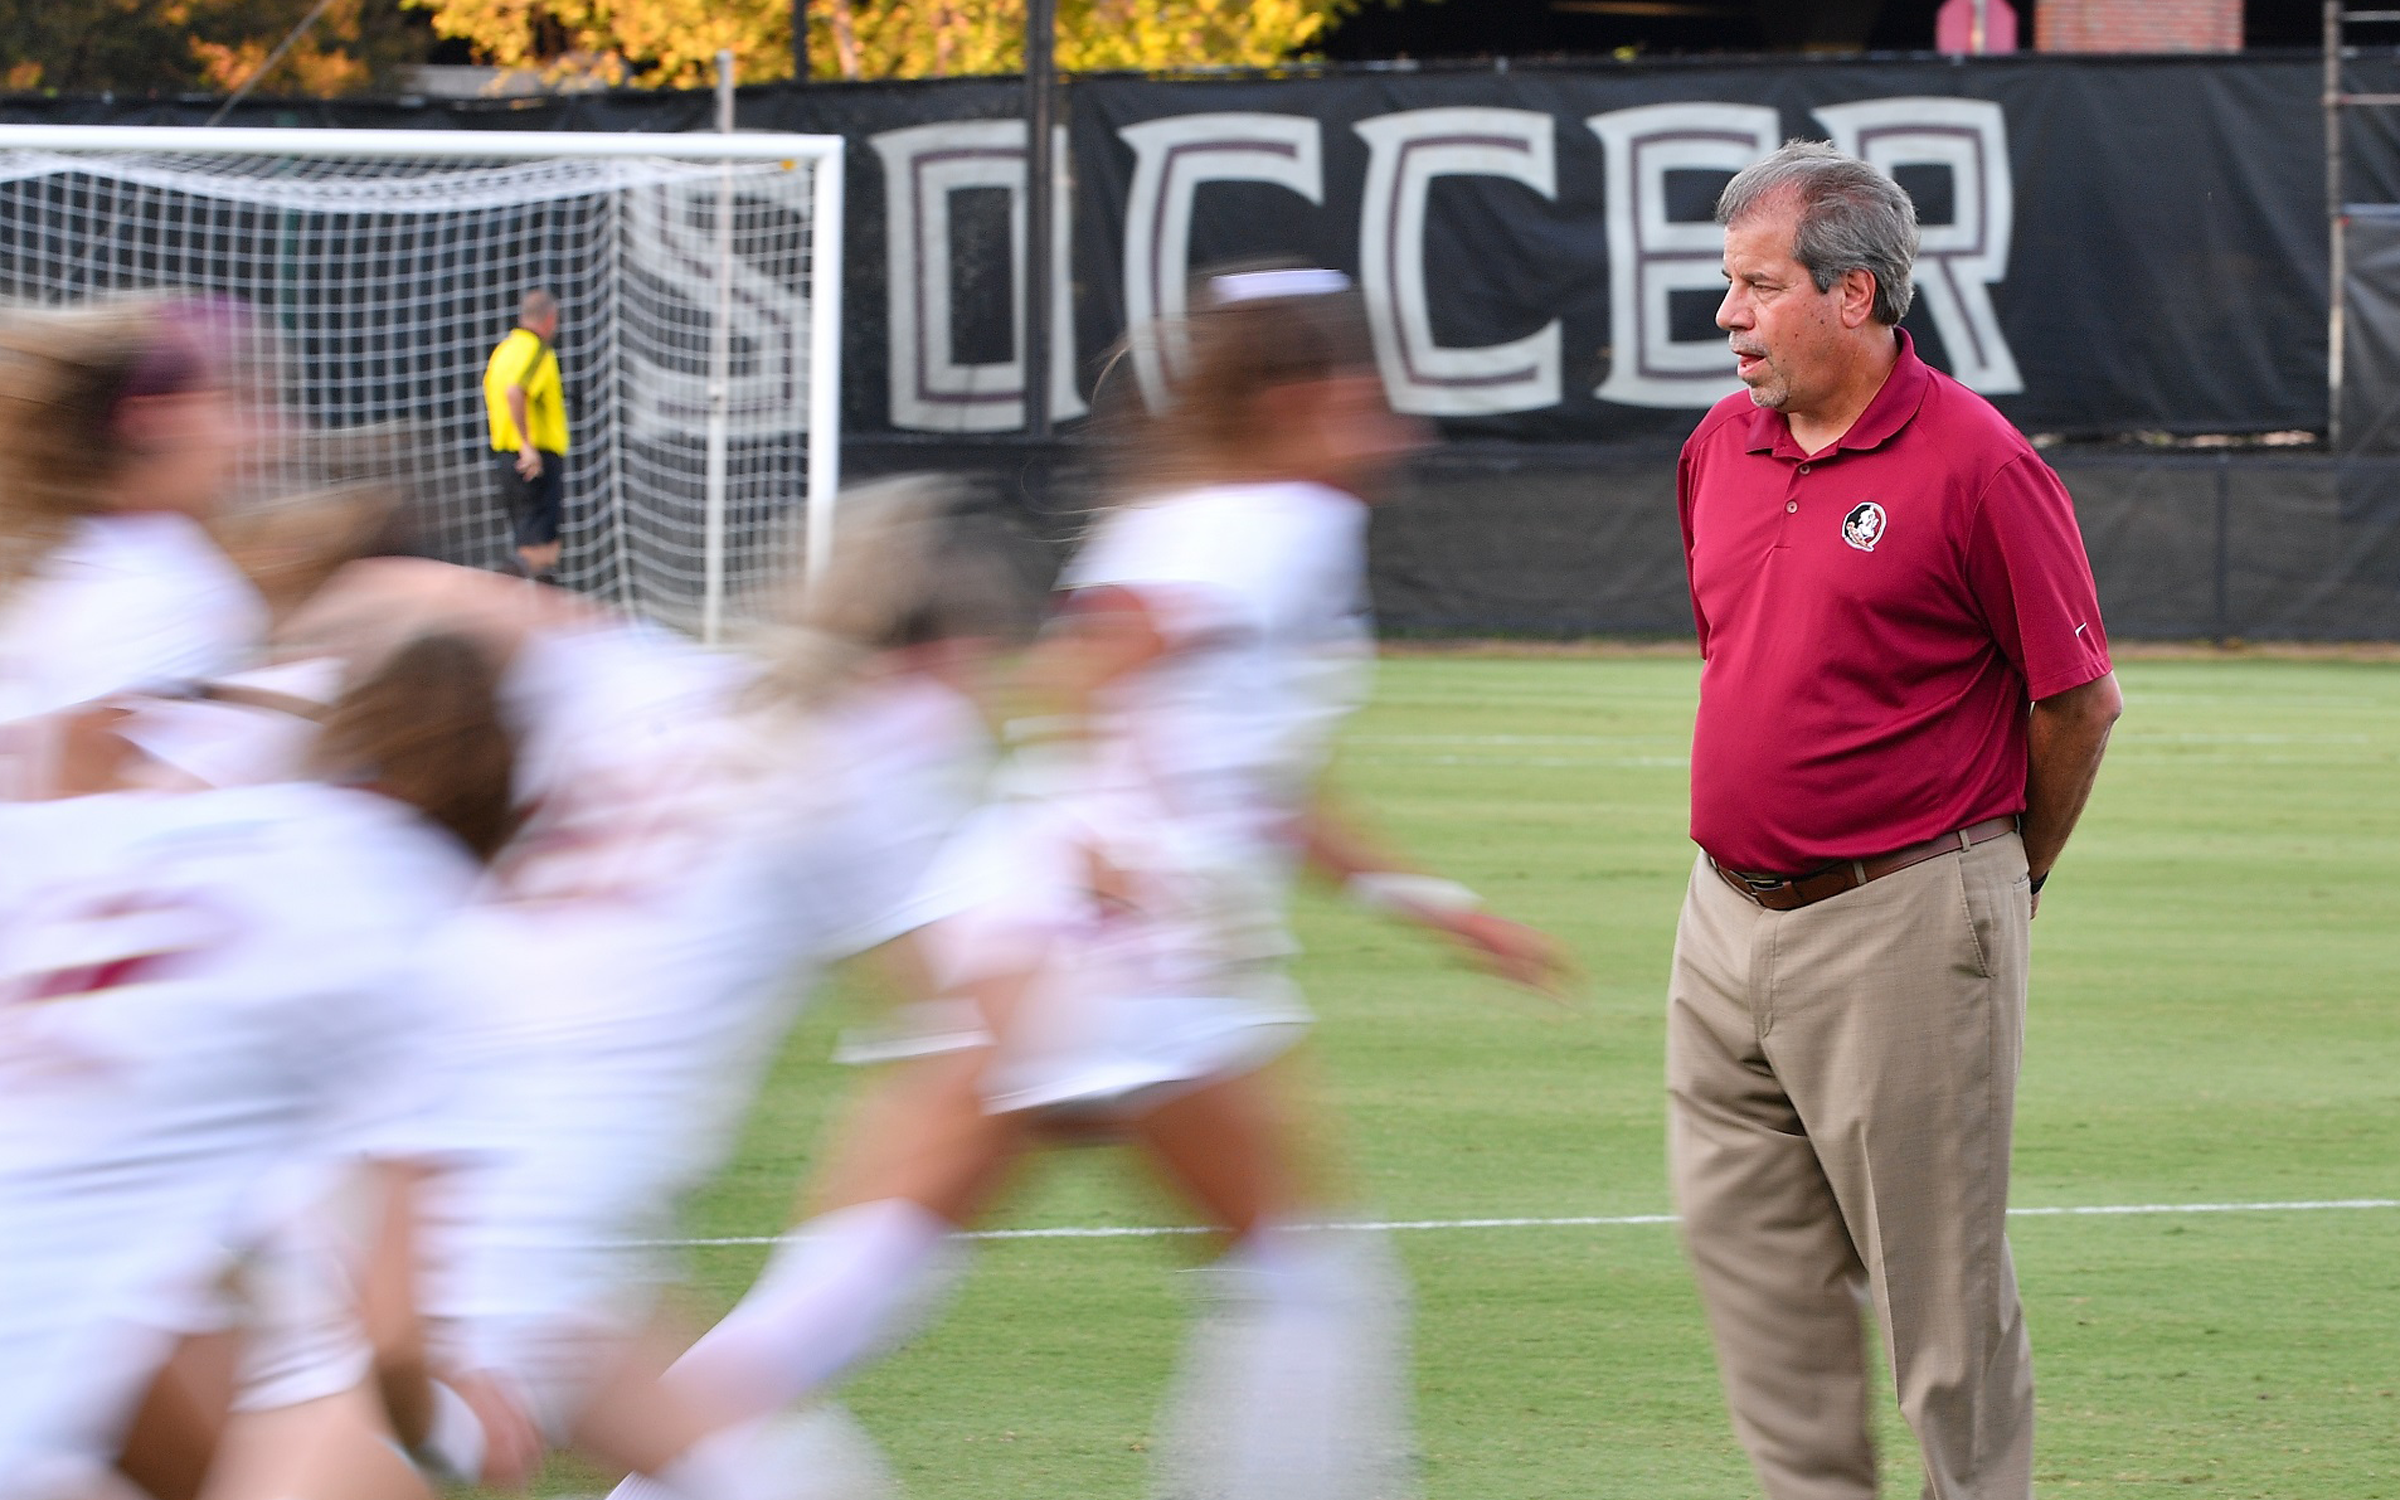 Coach Krikorian with players on a field